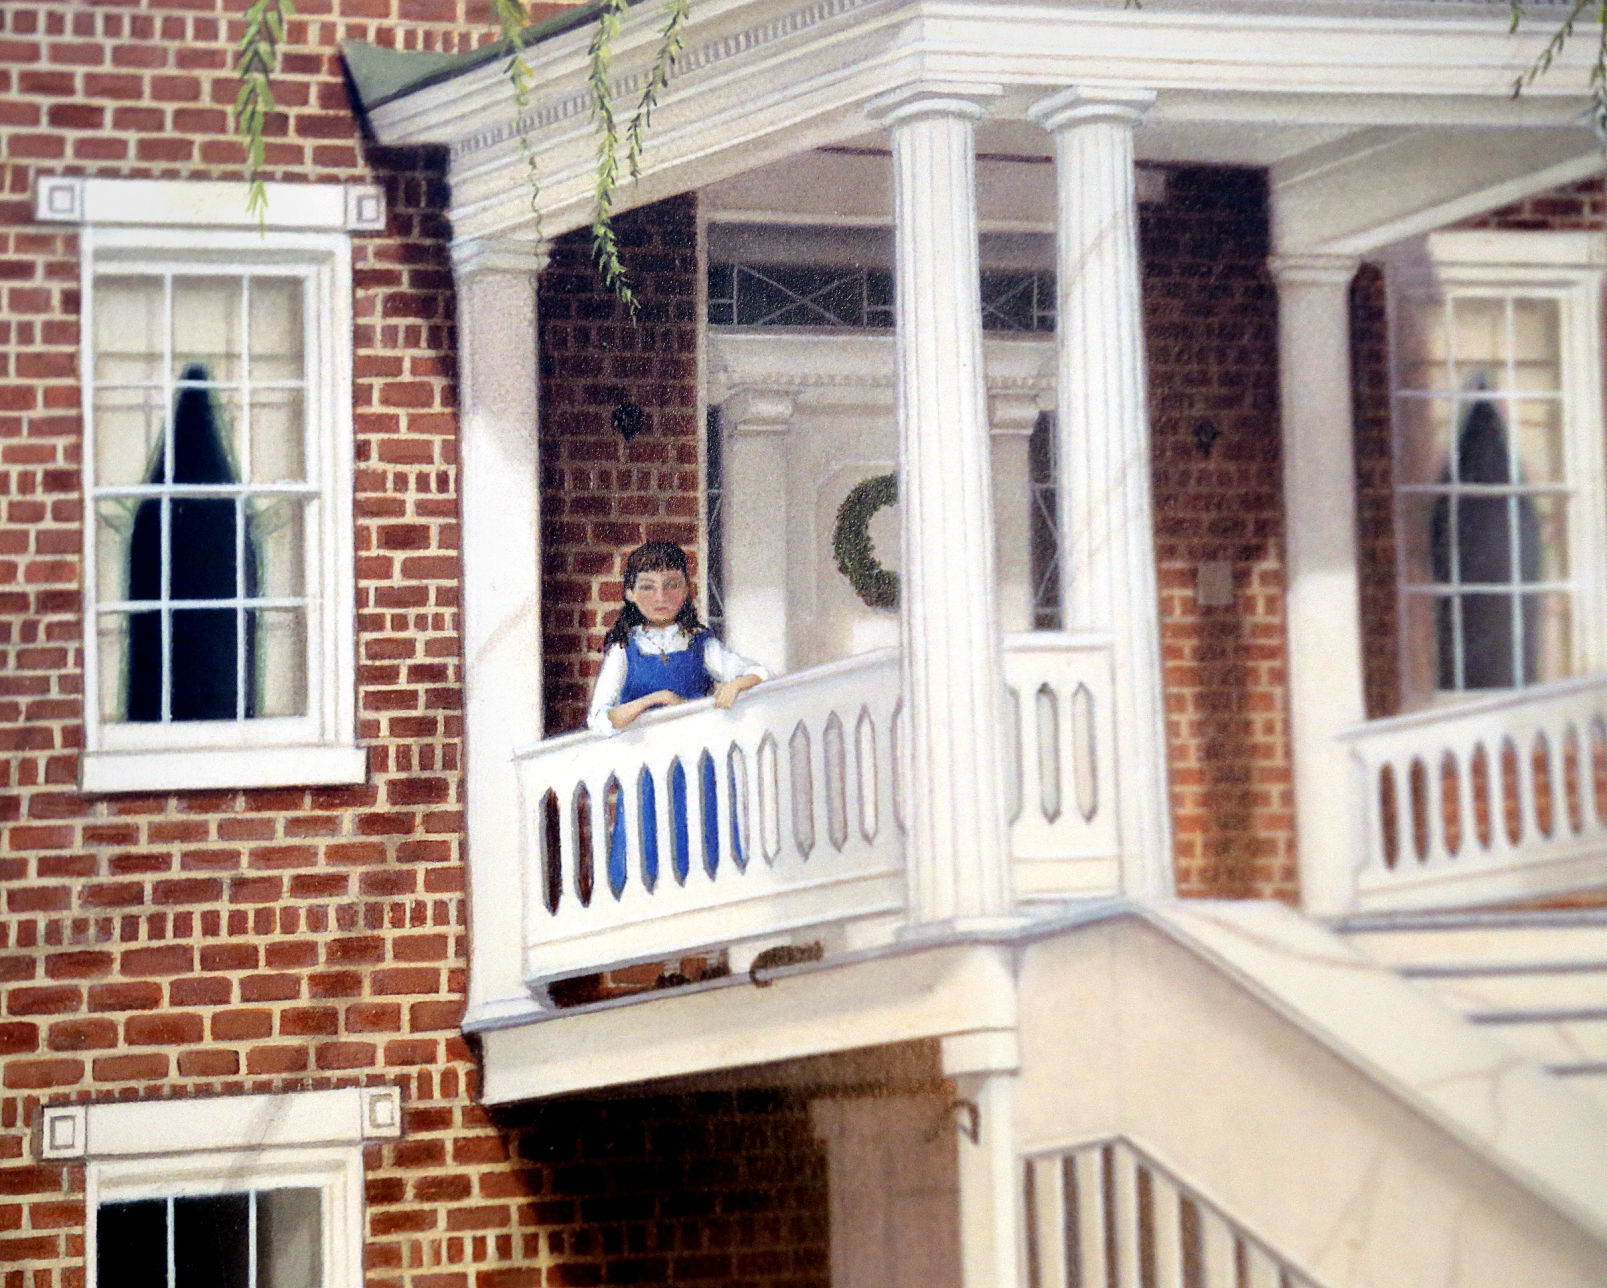 Scholars treated to tour of Willa Cather's birthplace